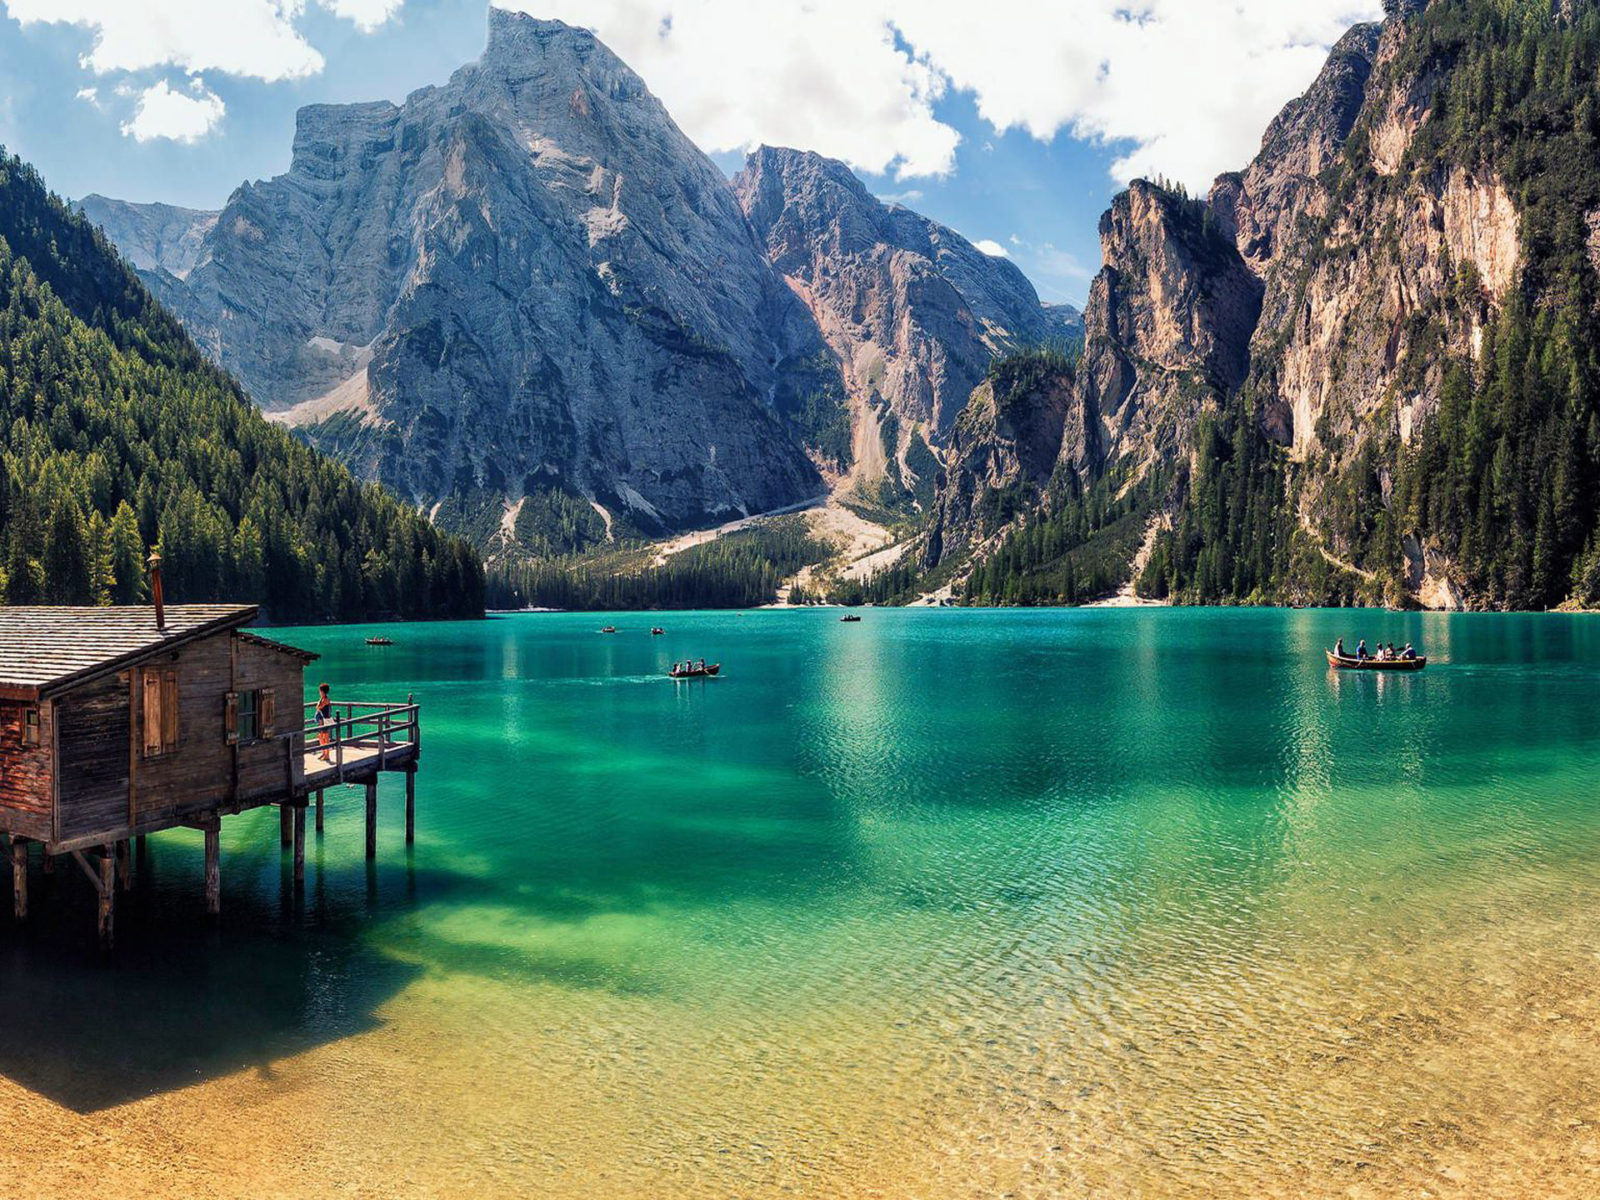 Cool Wallpapers Water Fall Pragser Wildsee Italy Blue Mountain Lake Clear Water